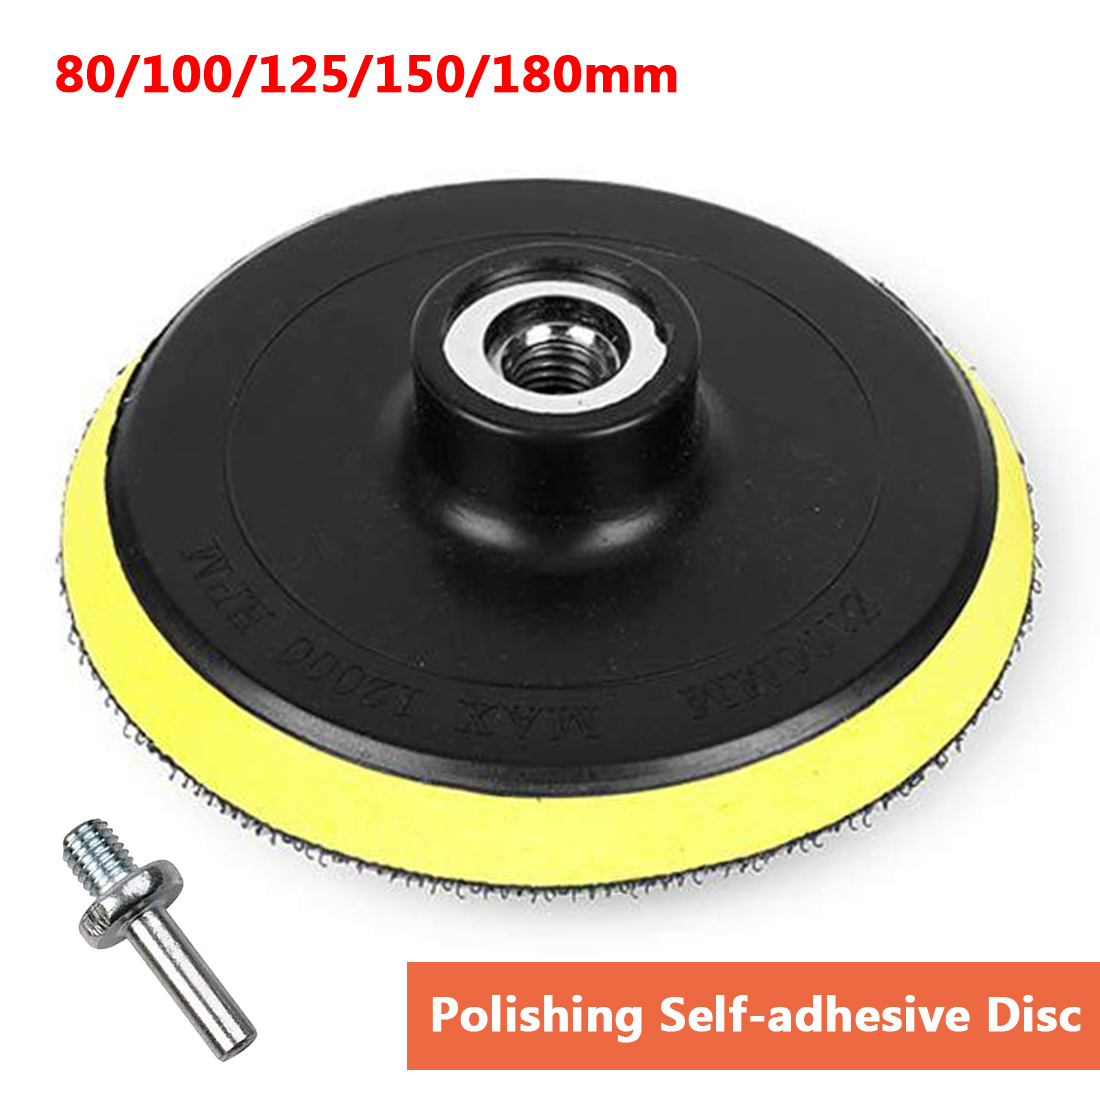 Tools Dedicated Dremel 80-180mm Polishing Self-adhesive Disc Polishing Sandpaper Sheet Adhesive Disc Chuck Angle Grinder Sticky Plate For Car Quality And Quantity Assured